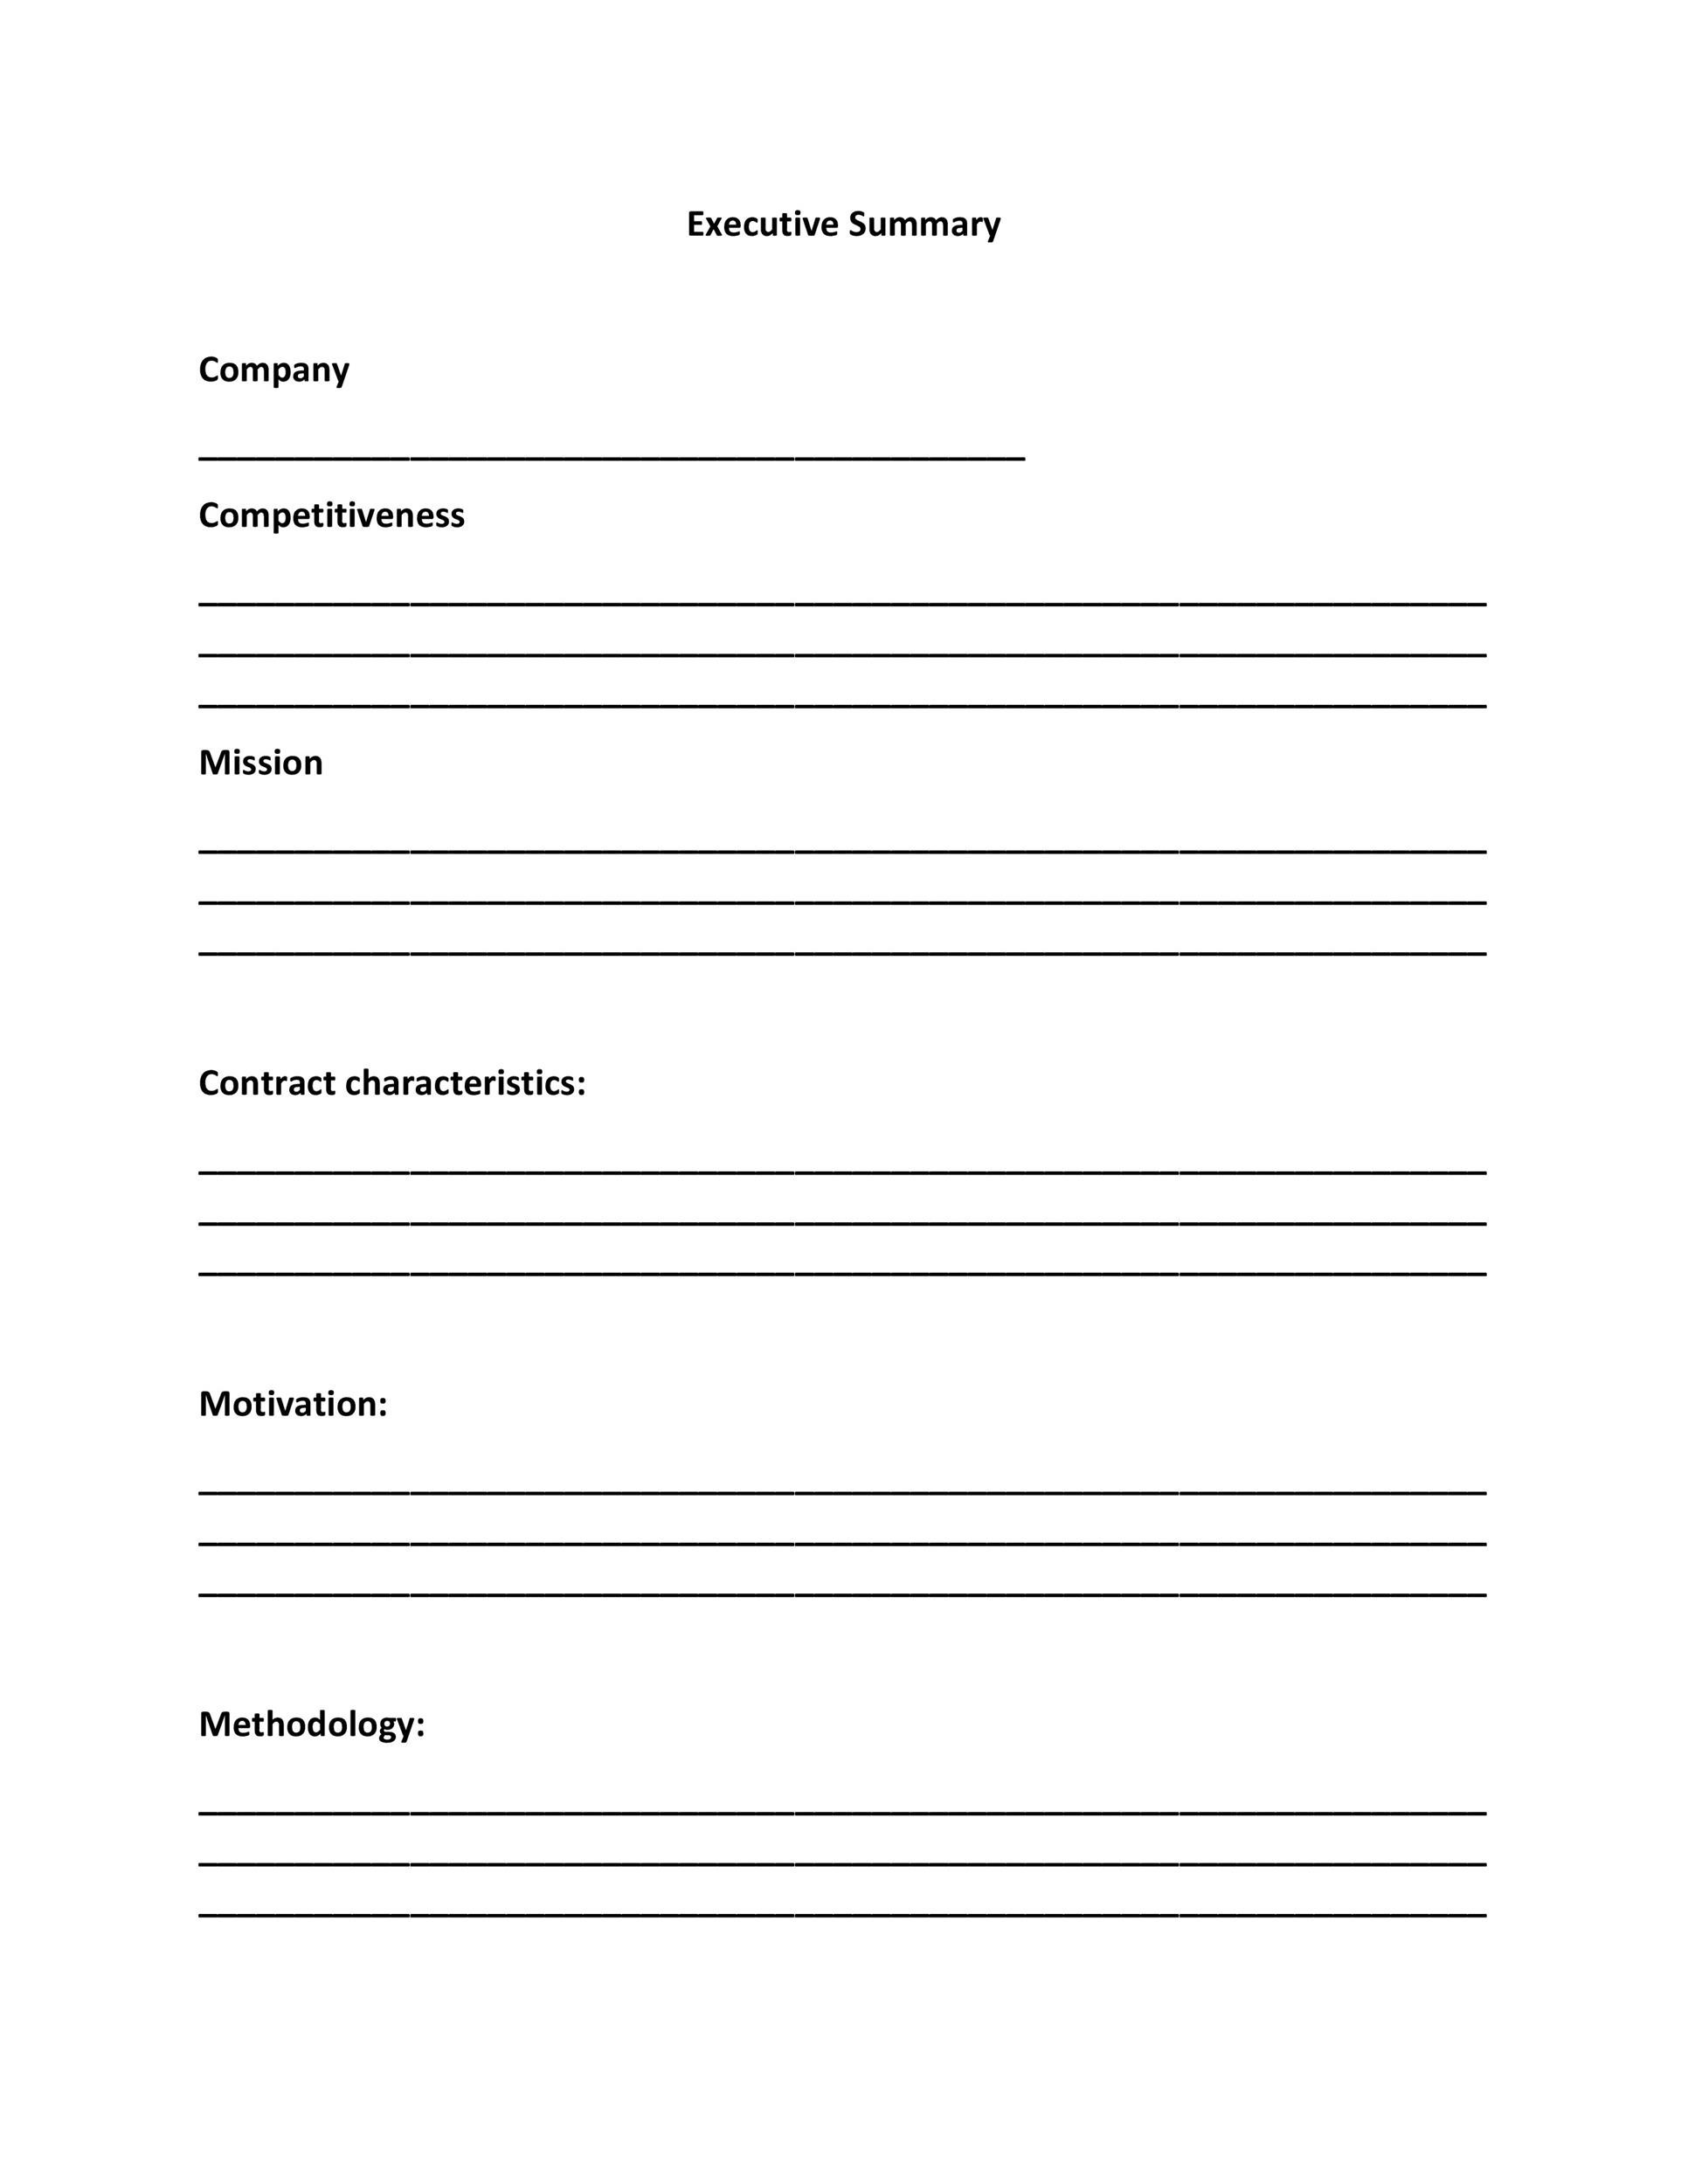 Free Executive Summary Template 21